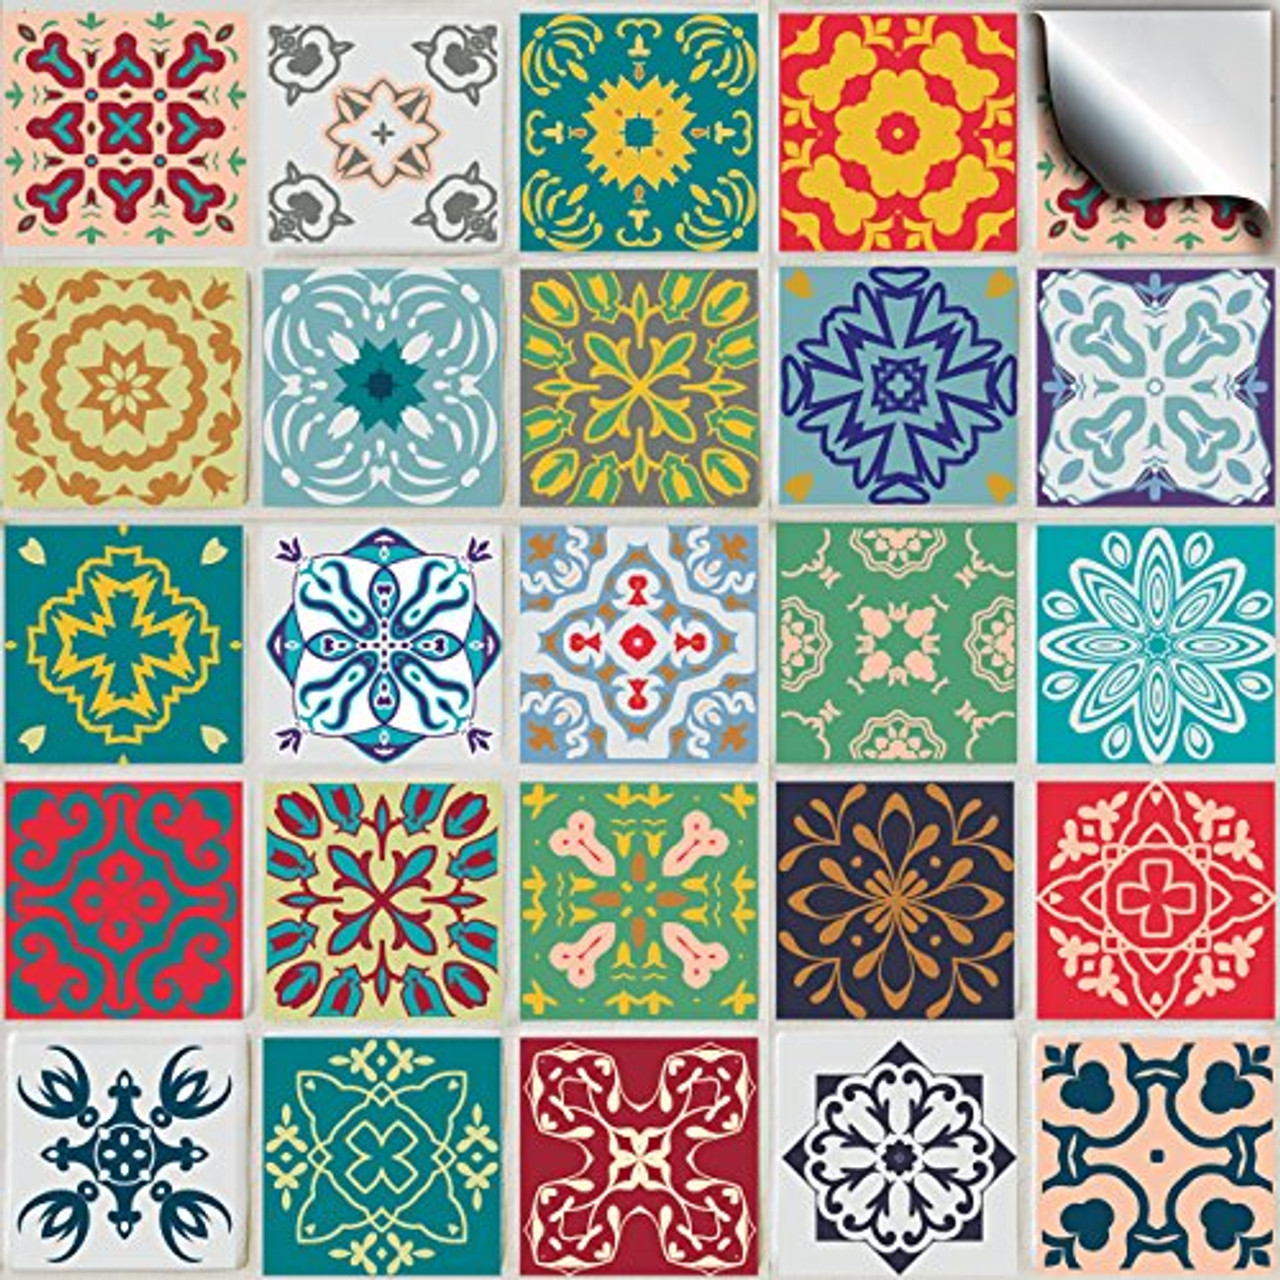 Tile Style Decals 24 Kitchen Tile Stickers For 6 Inch 15cm Square Tiles Directly From No Middleman Tp50 6 Pack Of 24